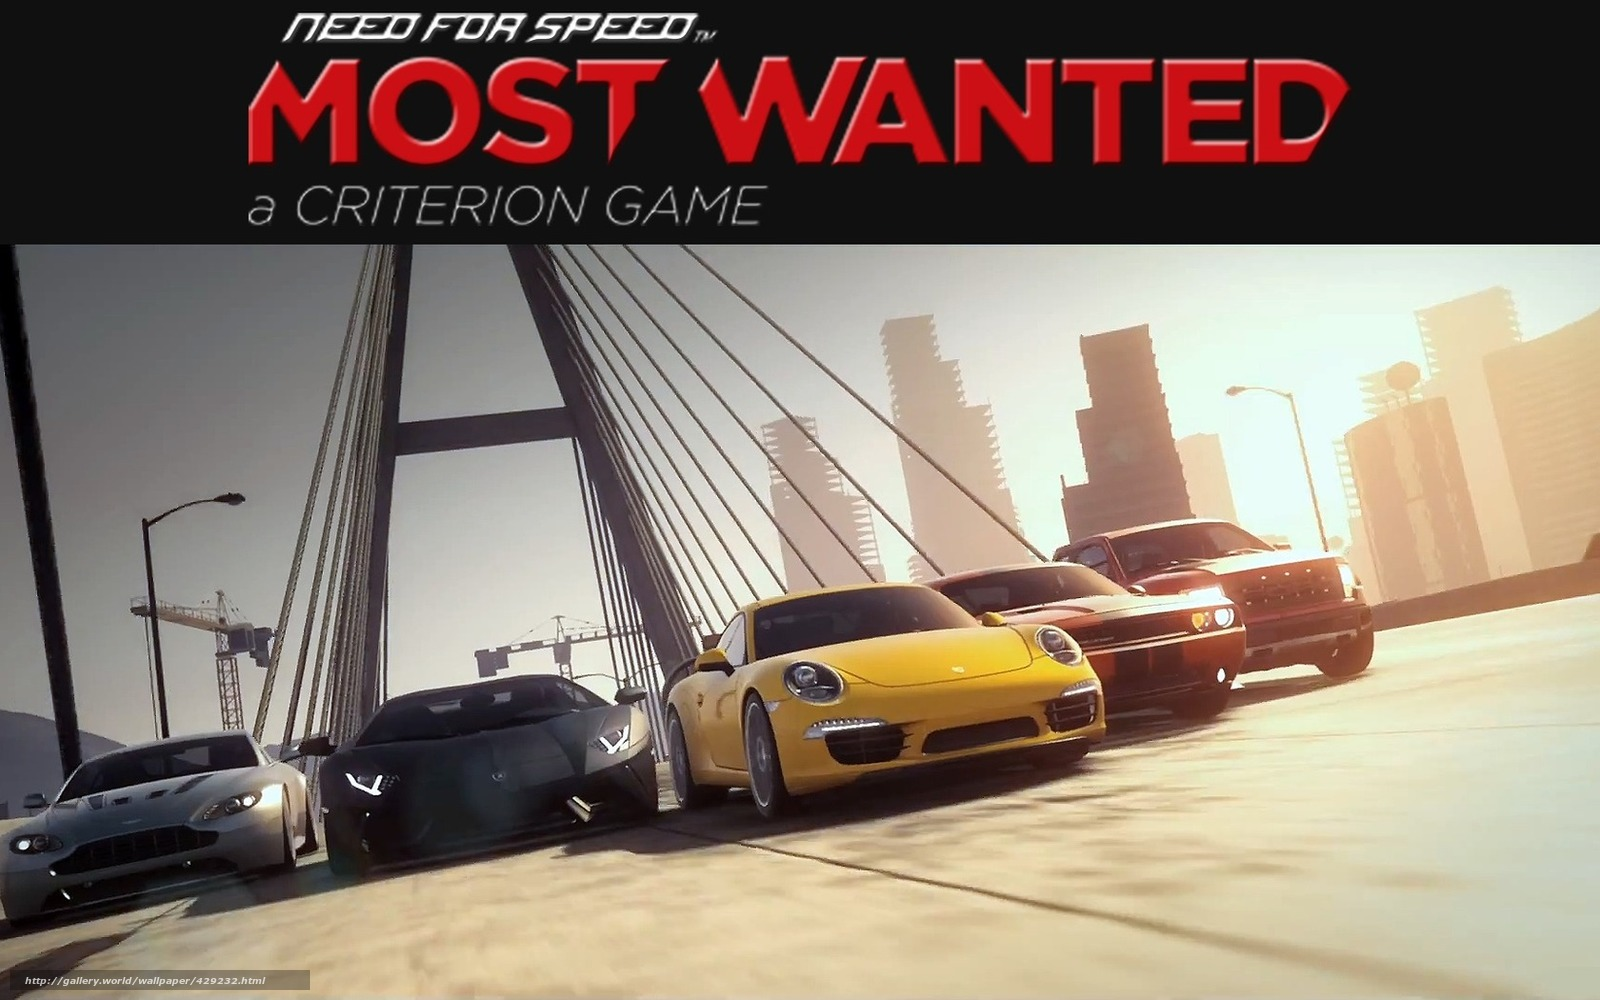 Need For Speed Most Wanted 2 - обои для рабочего стола